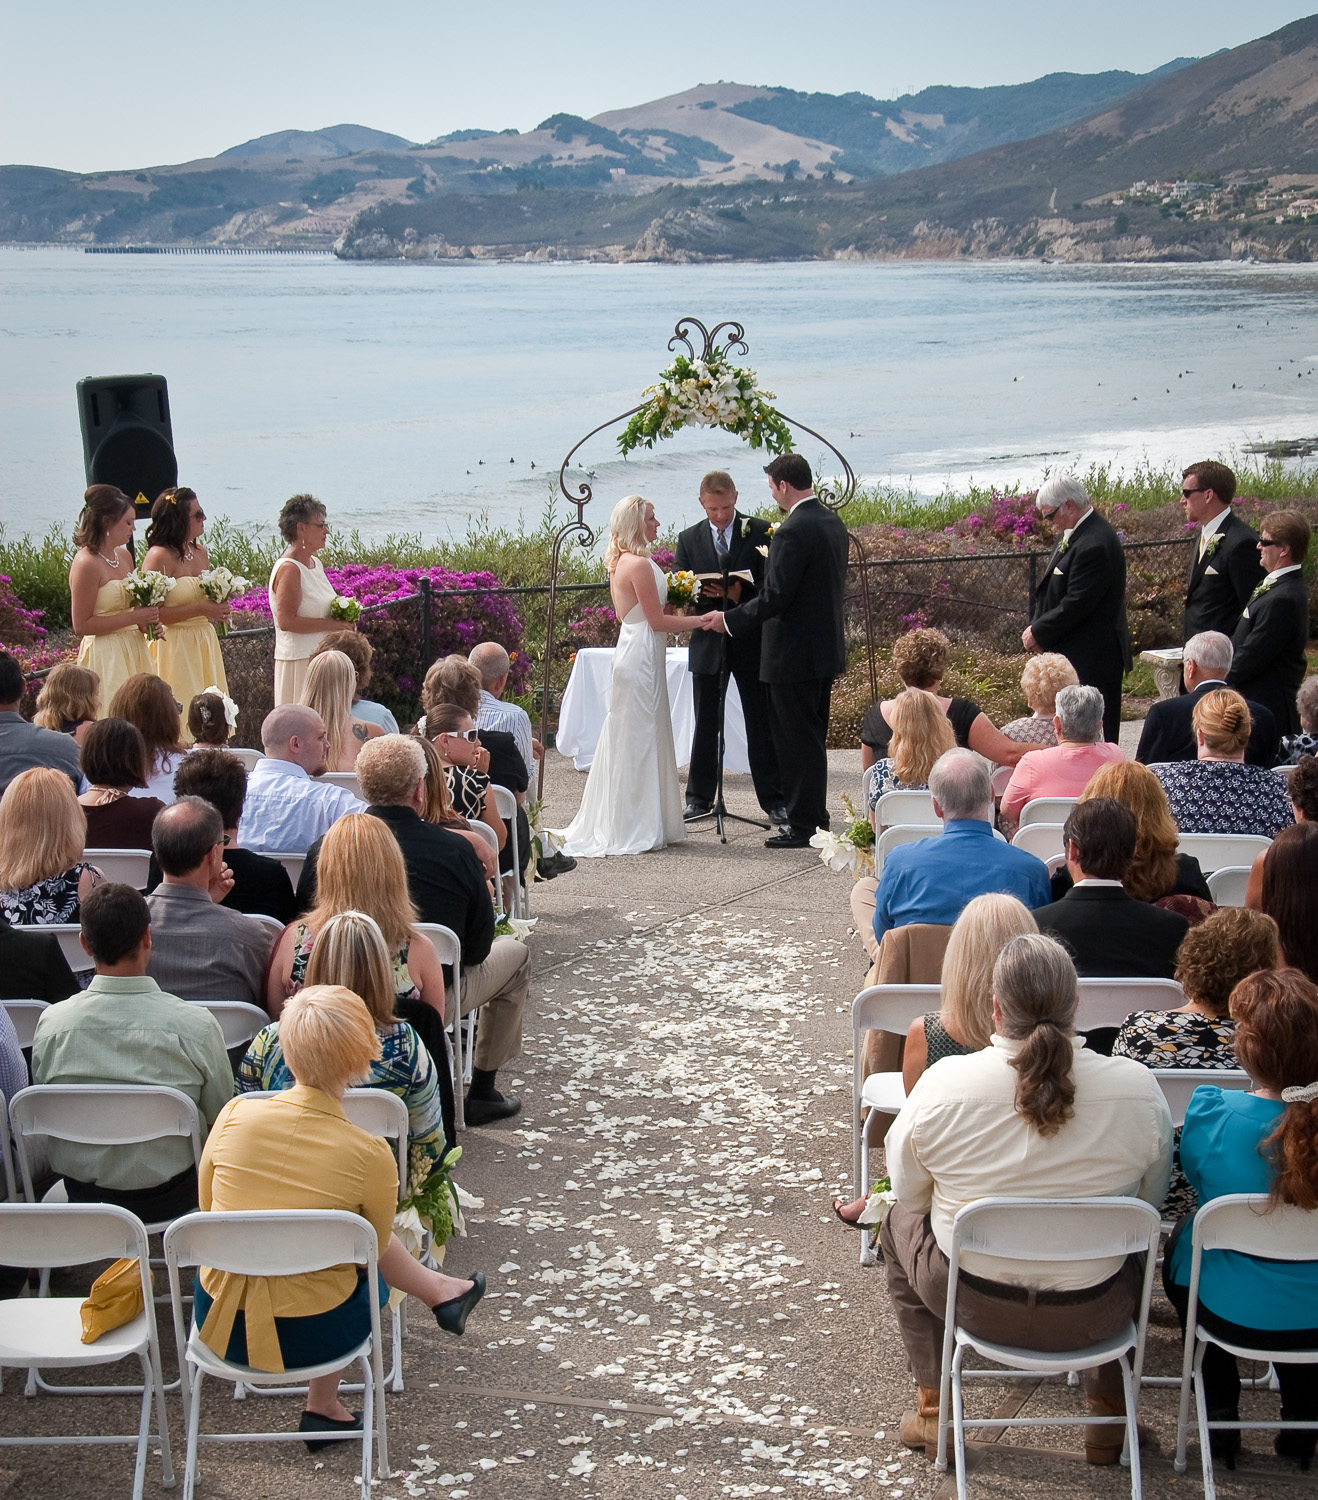 Spygl Inn In Pismo Beach Offers A Beautiful Panoramic Ceremony